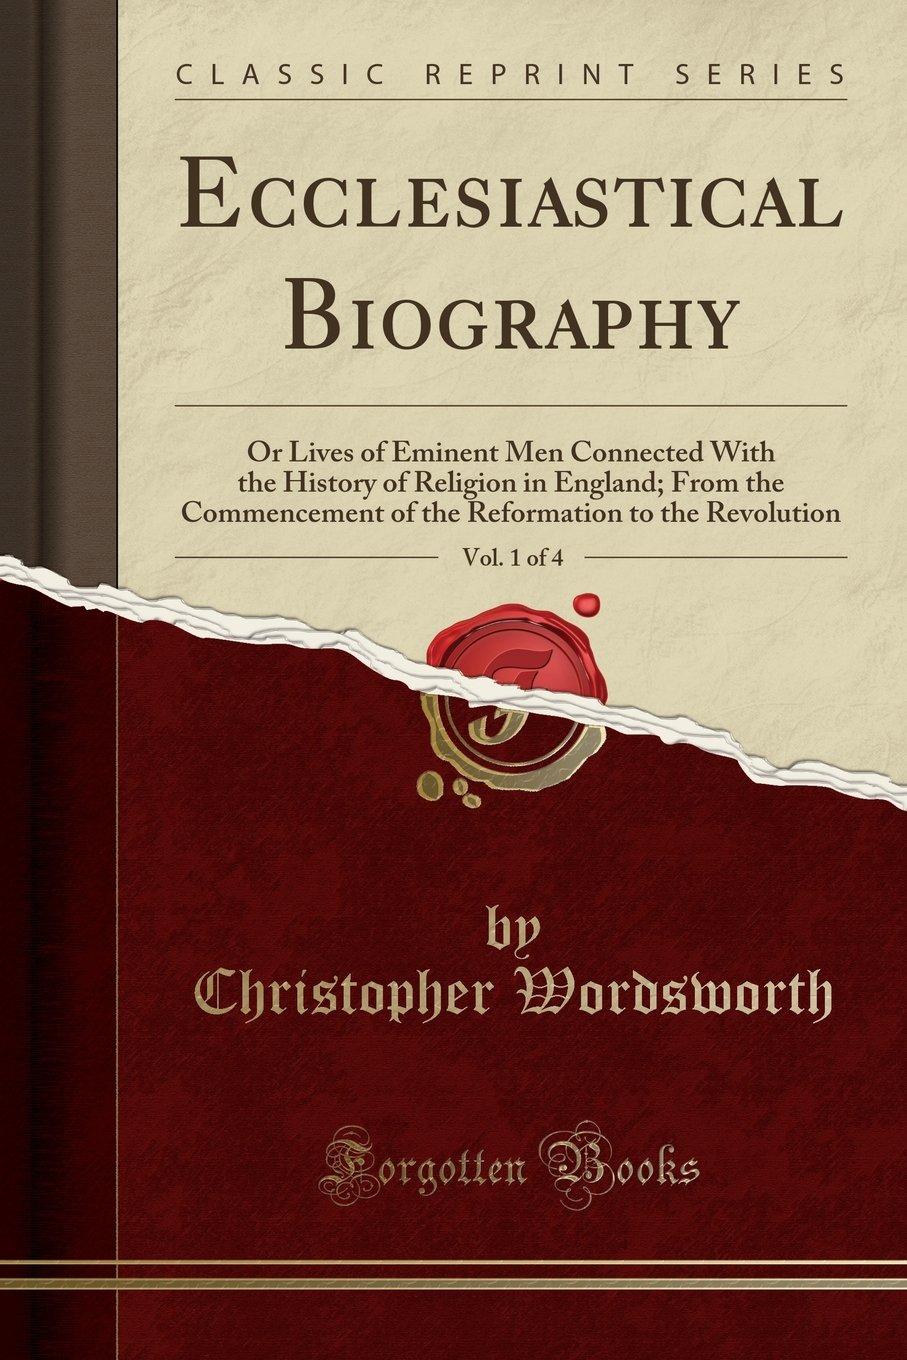 Ecclesiastical Biography, Vol. 1 of 4: Or Lives of Eminent Men Connected With the History of Religion in England; From the Commencement of the Reformation to the Revolution (Classic Reprint) PDF